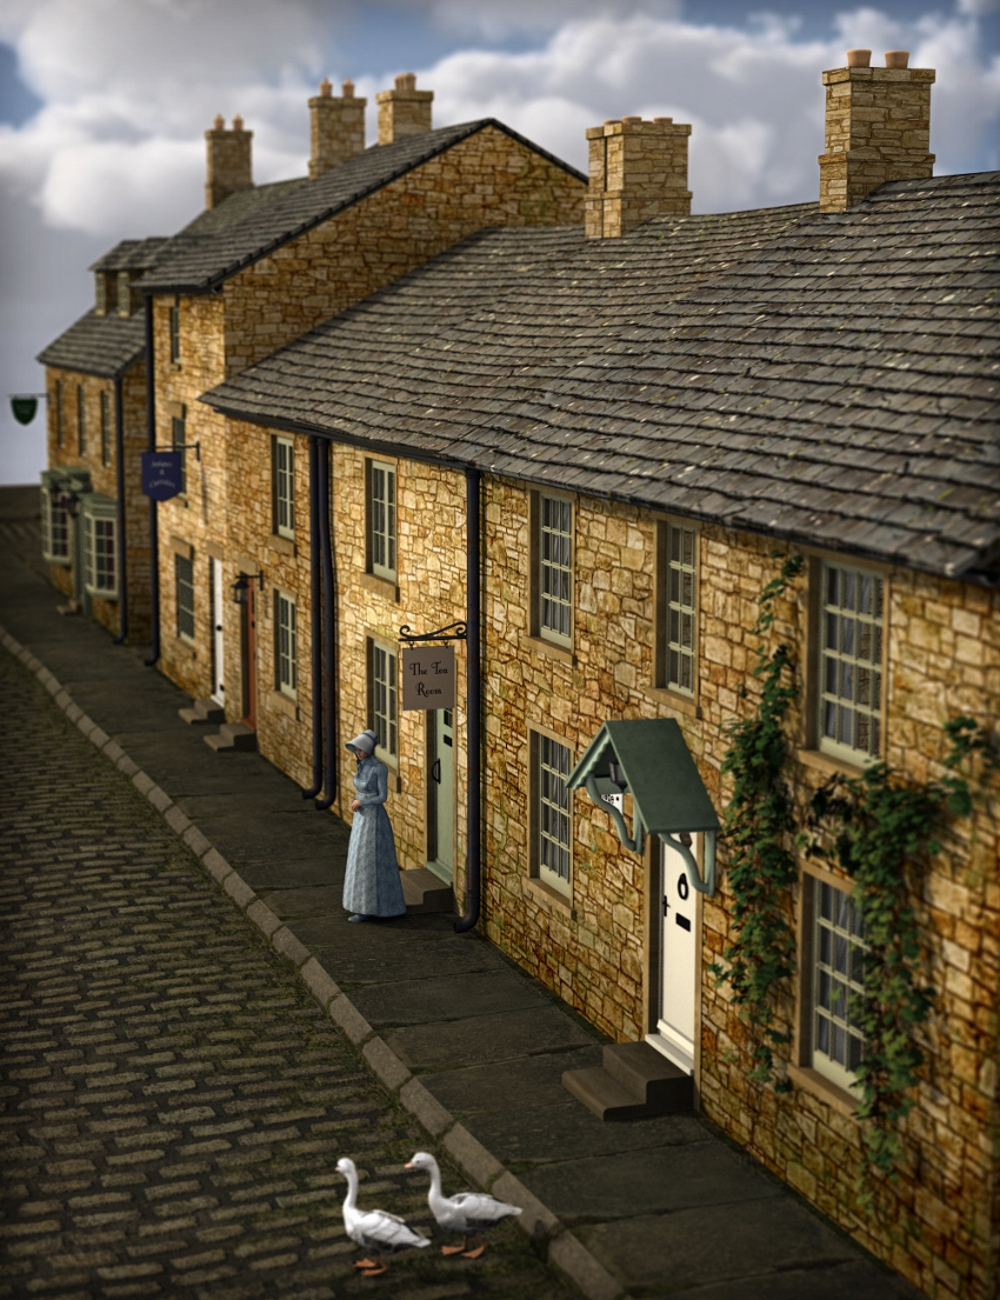 Build a Street: English Country Village by: Inkara, 3D Models by Daz 3D